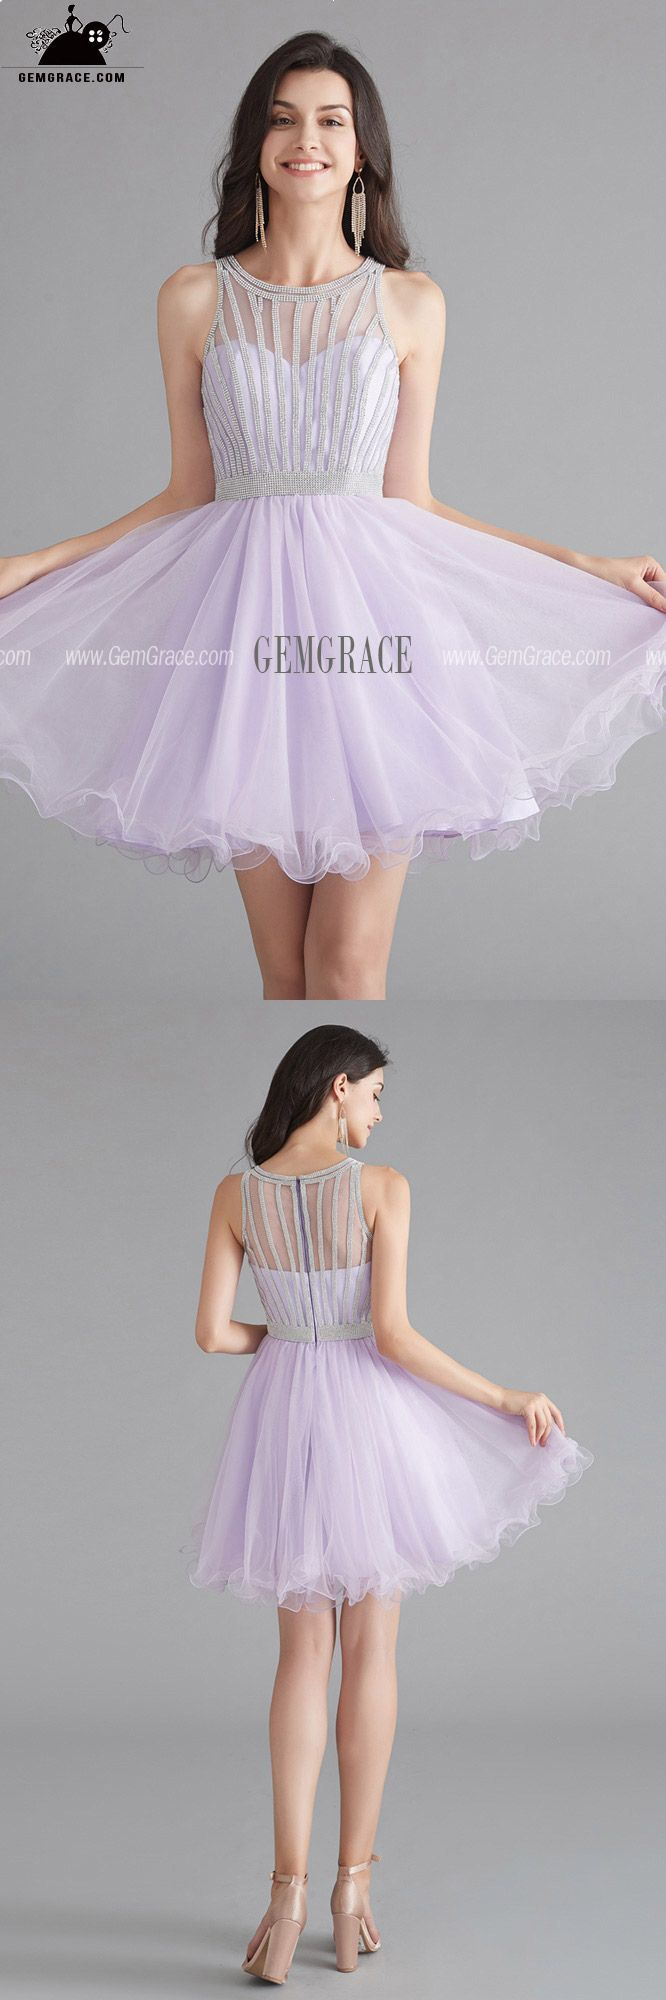 103 89 Lilac Cute Short Tulle Little Party Dress With Beading Top Ezg010 Gemgrace Com Party Dress Bridesmaid Dresses Prom Homecoming Dresses Short [ 2000 x 666 Pixel ]